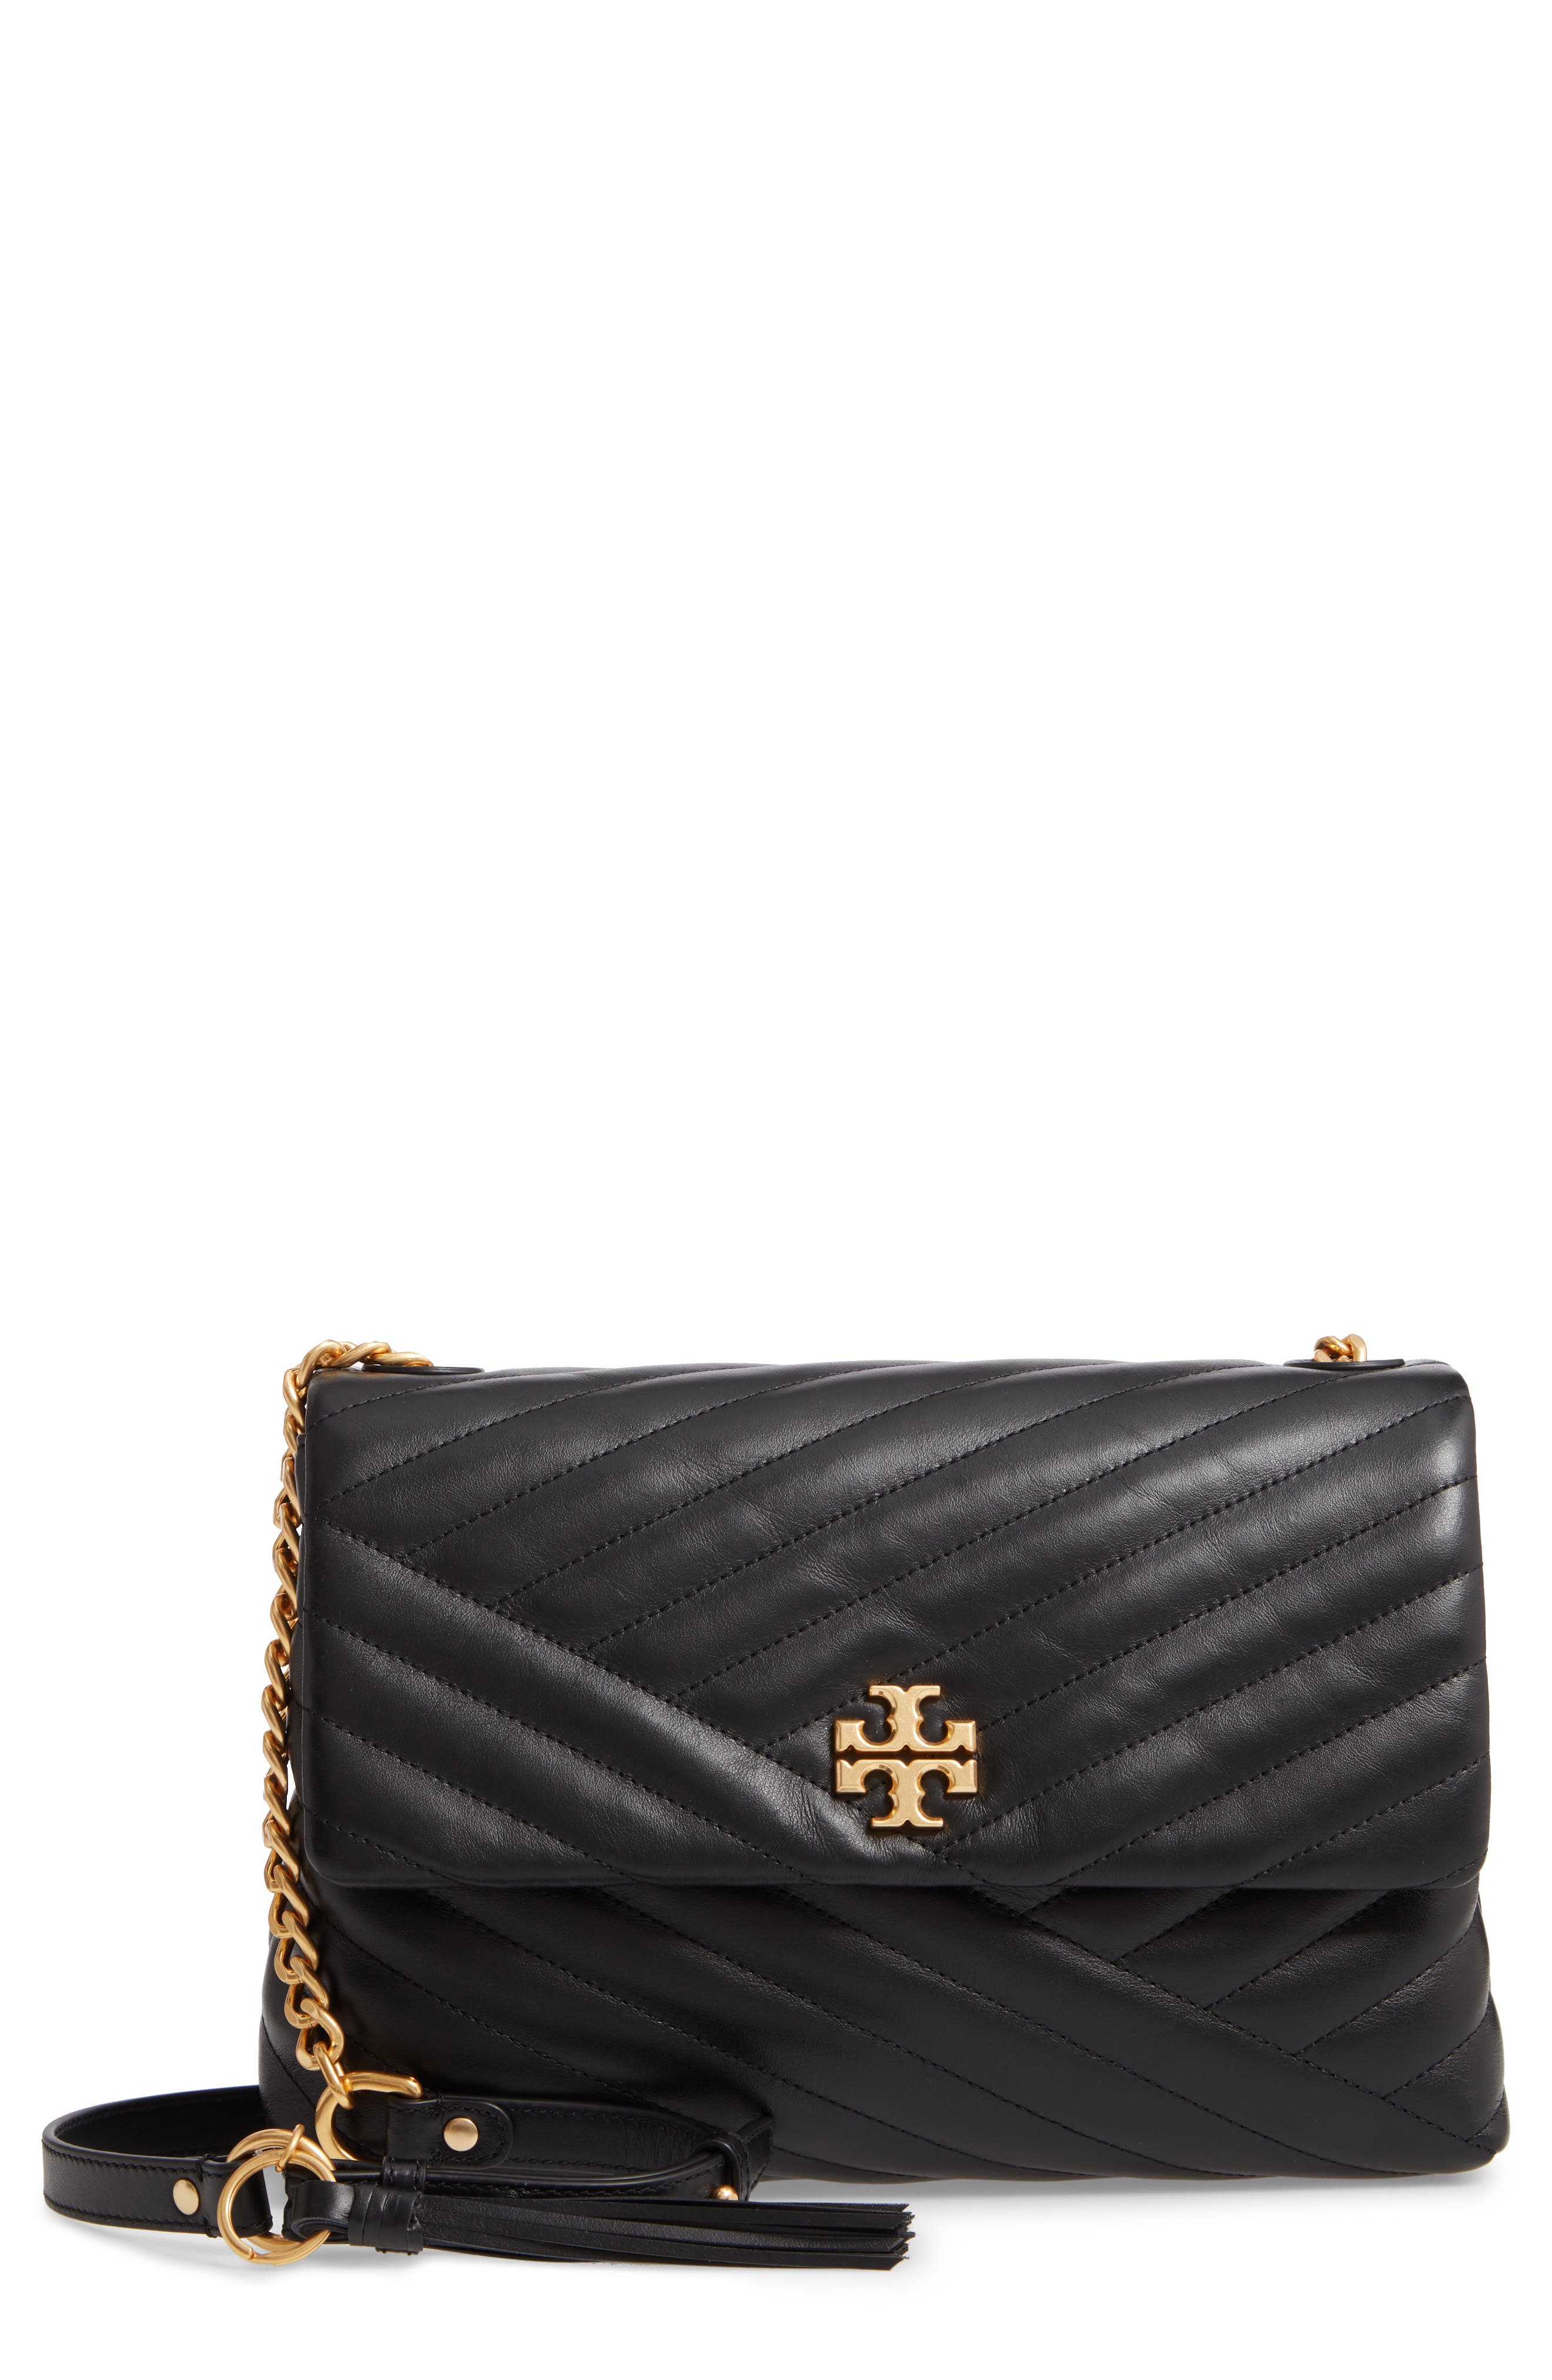 Designer Inspired Leather Quilted Chevron Cross Body Quilted Shoulder Bag